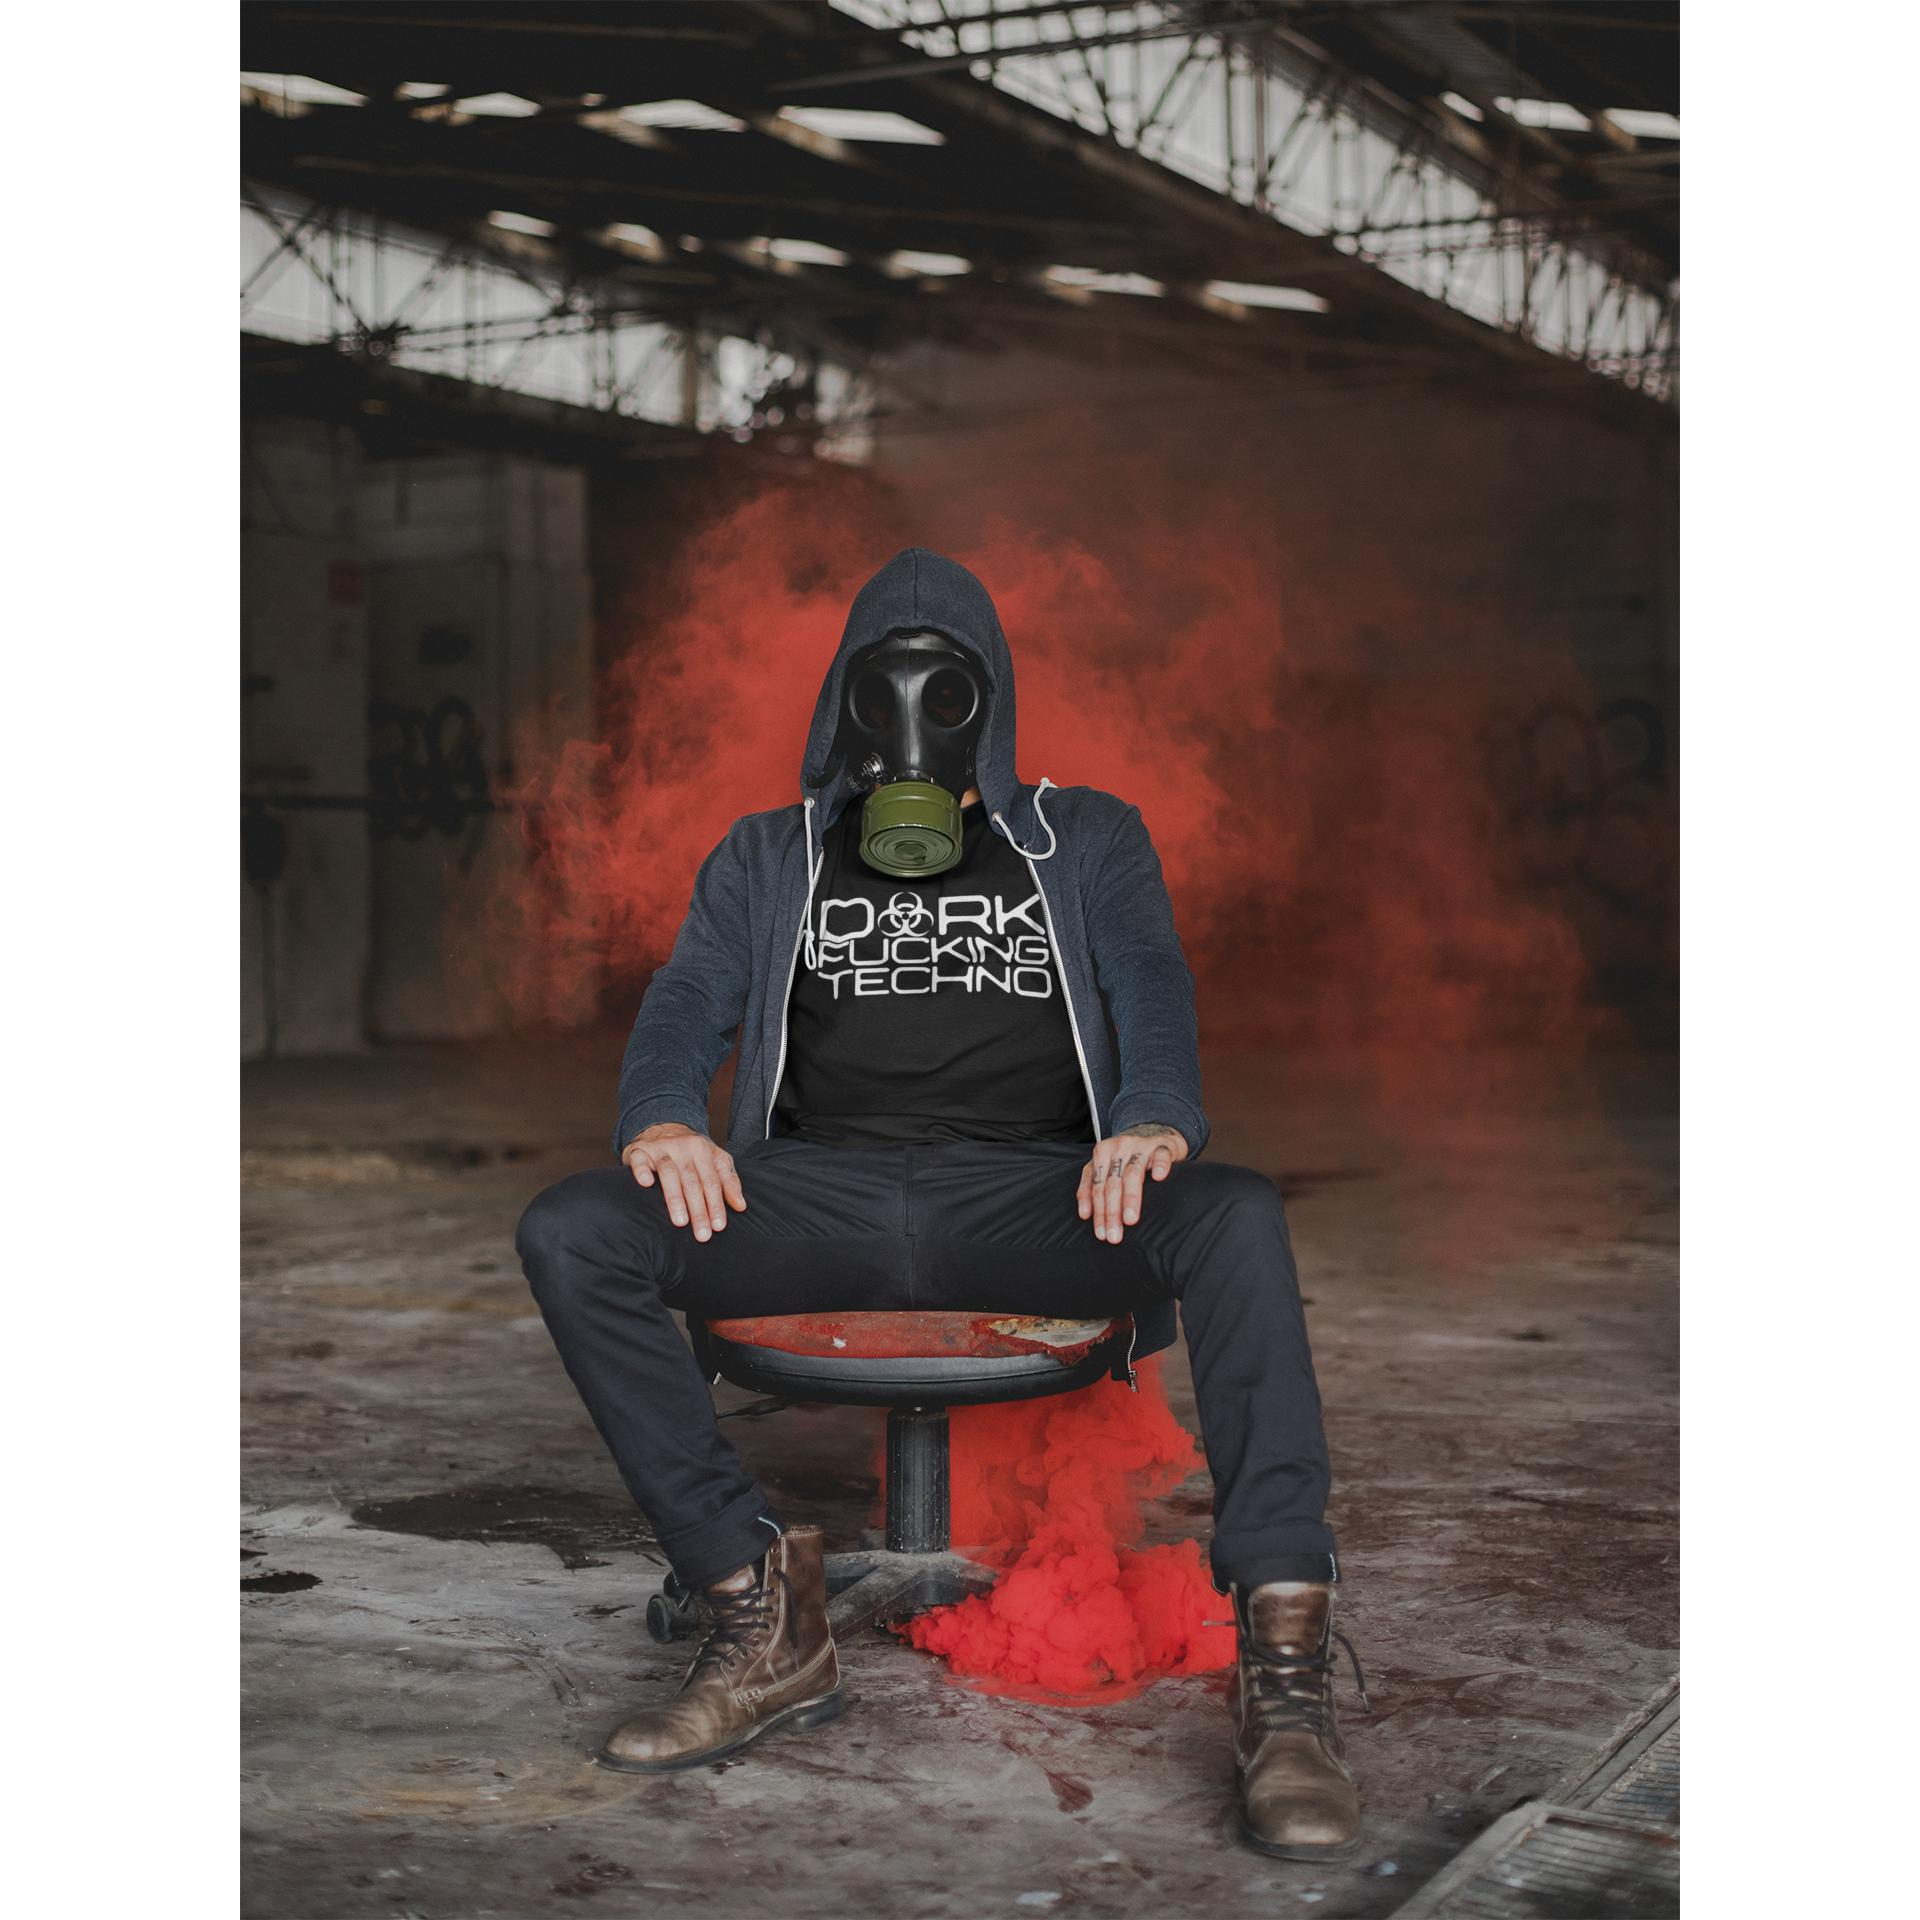 Dark F Techno Rave On!® - Herren Shirt Herren Basic T-Shirt - Rave On!® der Club & Techno Szene Shop für Coole Junge Mode Streetwear Style & Fashion Outfits + Sexy Festival 420 Stuff